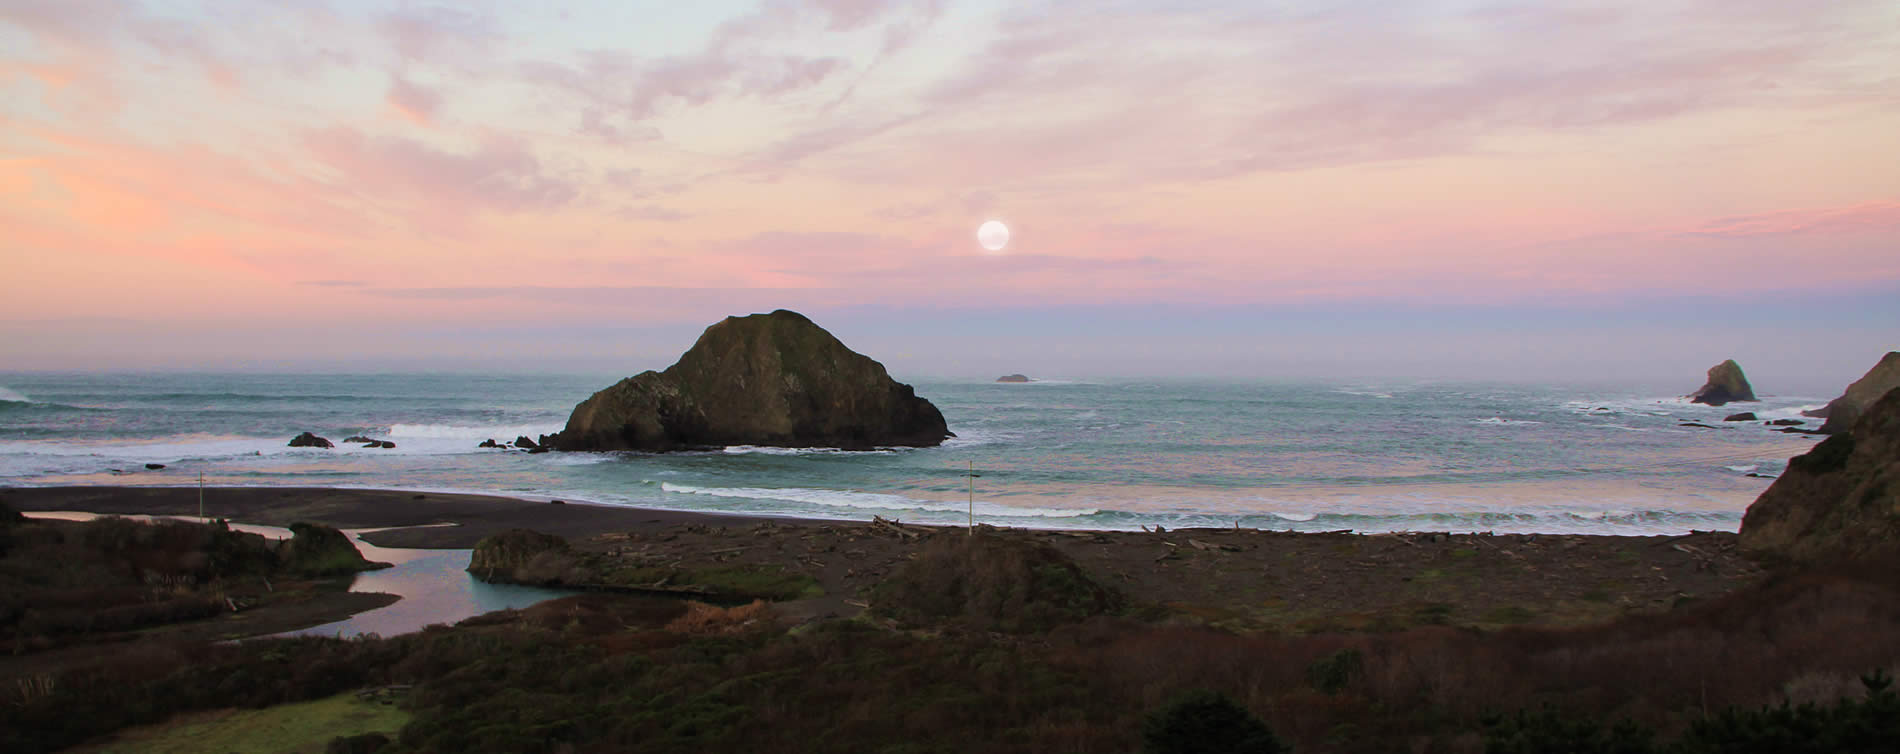 sunset along the mendocino coast of california